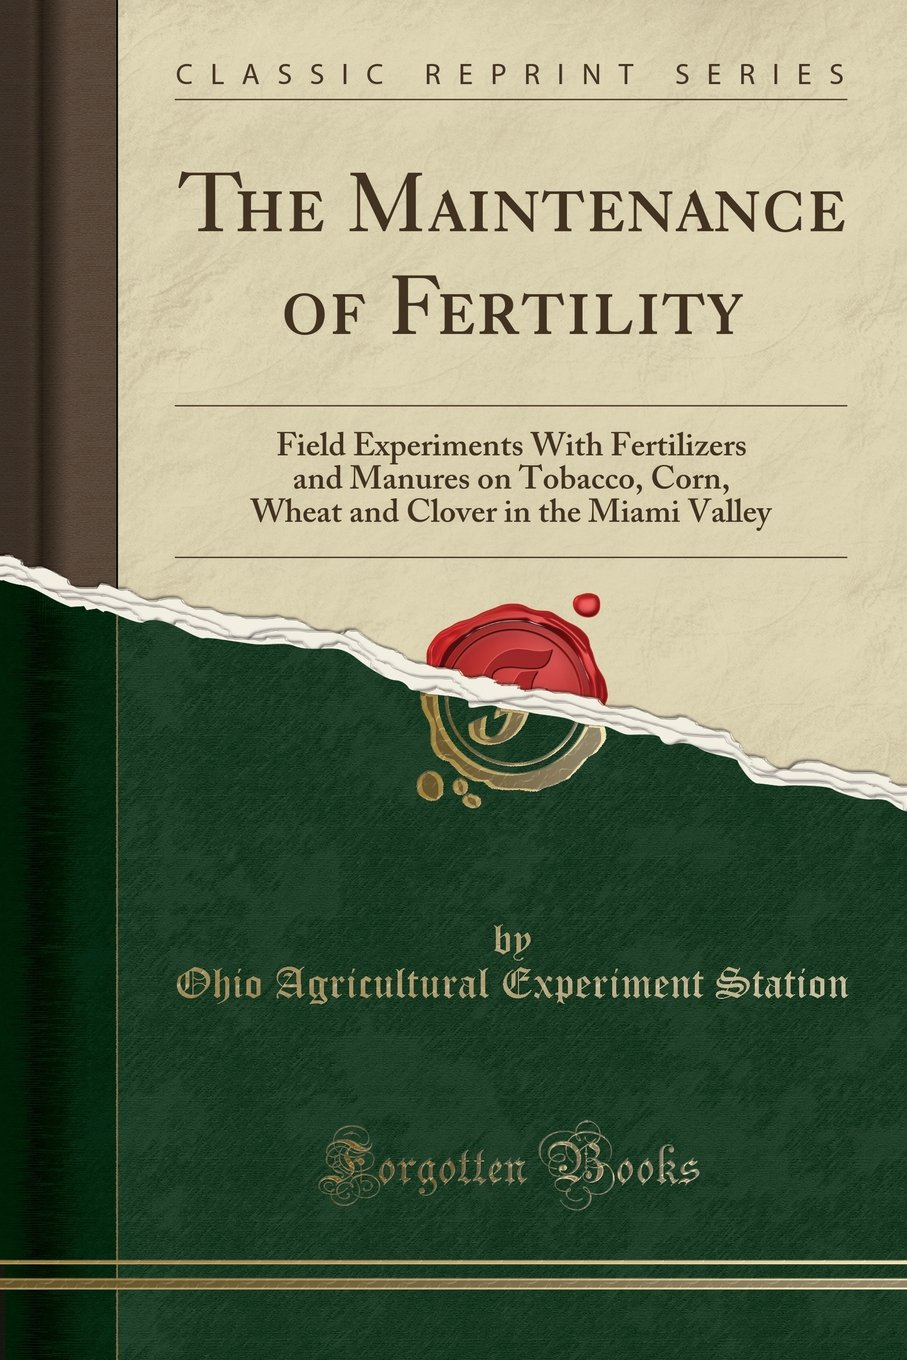 Download The Maintenance of Fertility: Field Experiments With Fertilizers and Manures on Tobacco, Corn, Wheat and Clover in the Miami Valley (Classic Reprint) pdf epub